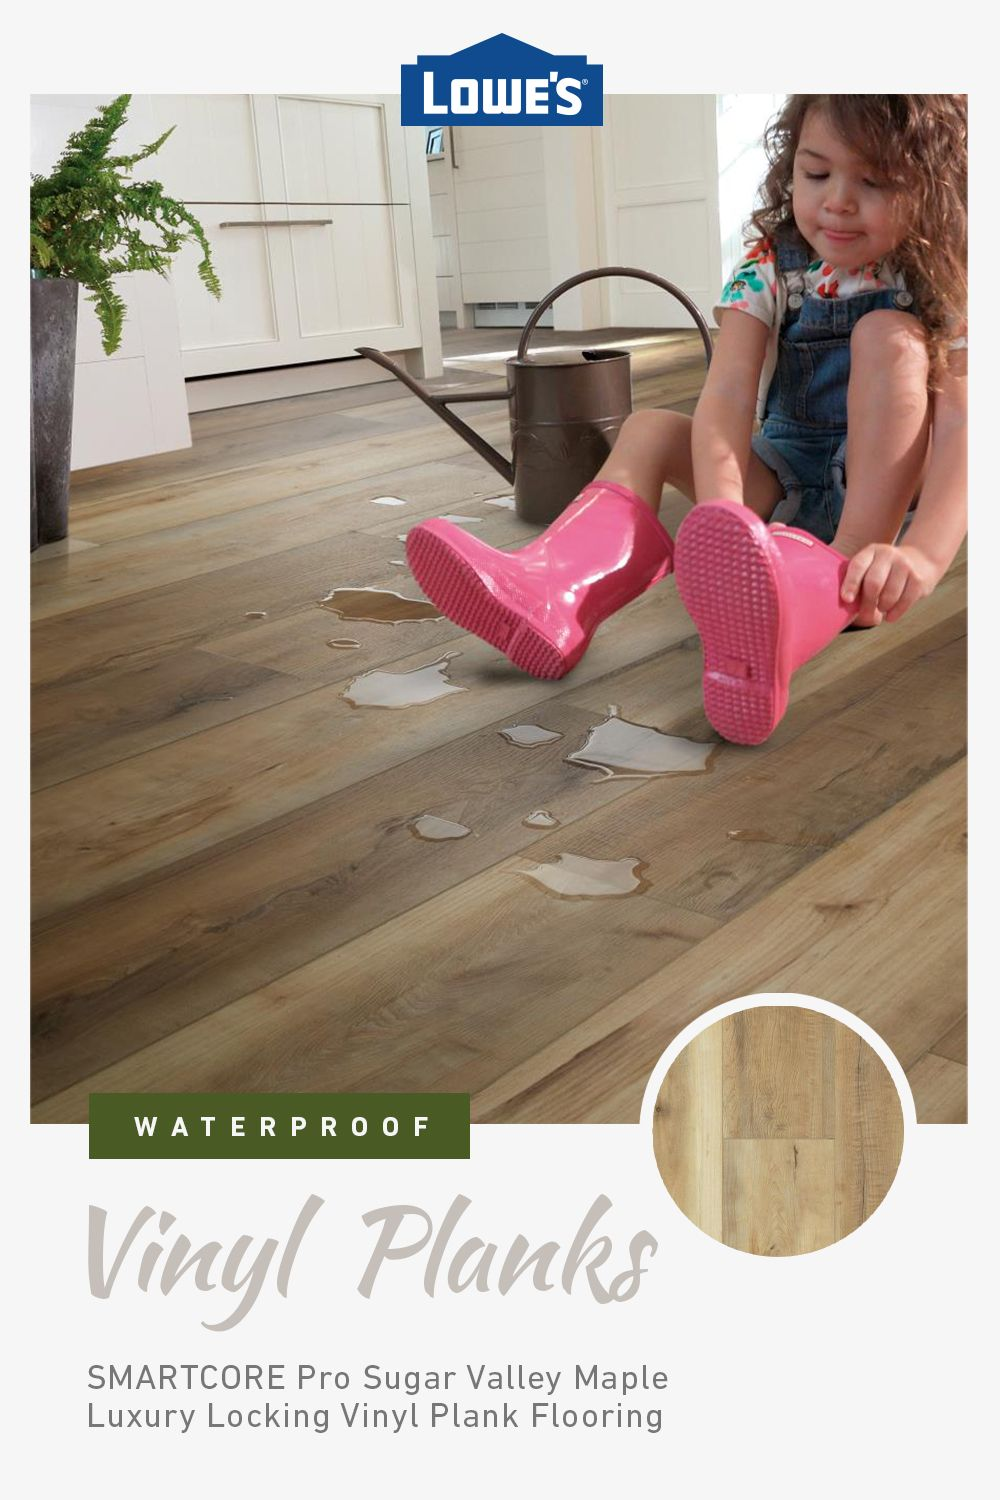 Go Waterproof With Trending Easy To Install Flooring Styles In Stock Now At Lowe S Vinyl Plank House Flooring Vinyl Plank Flooring